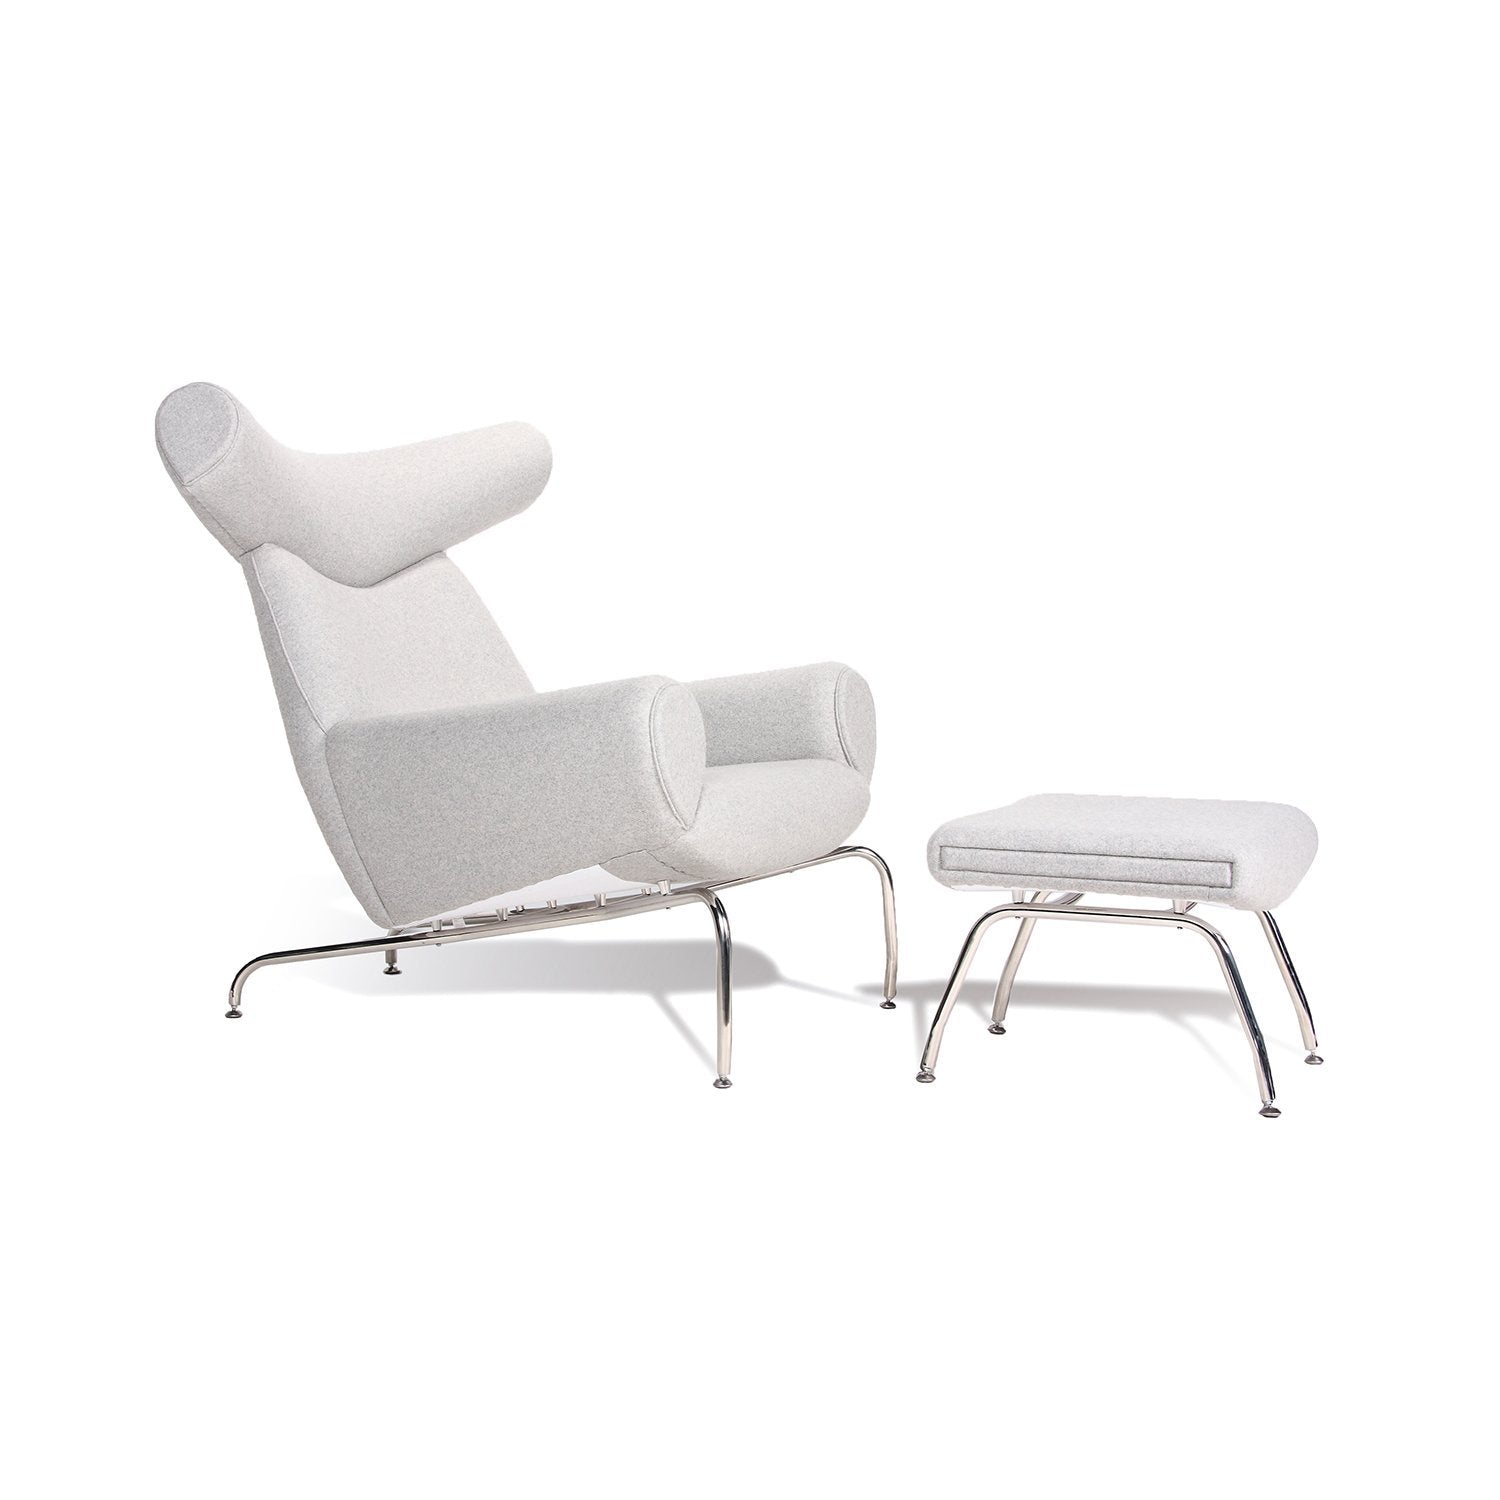 [FB0688LGREY] The Cooper Lounge Chair  and Ottoman